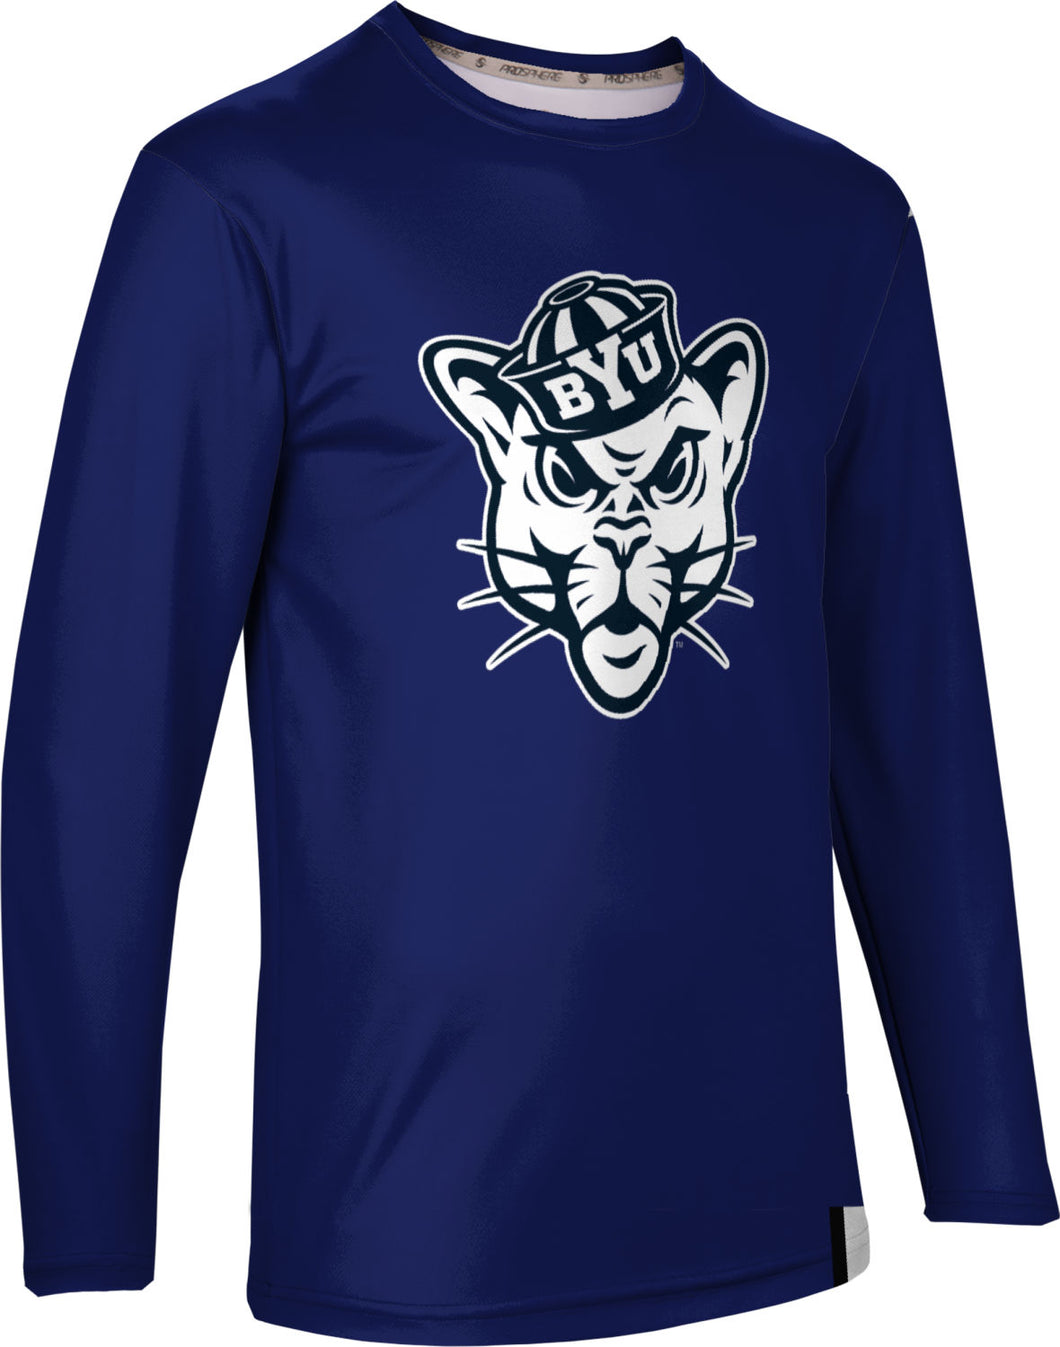 Brigham Young University: Men's Long Sleeve Tee - Solid